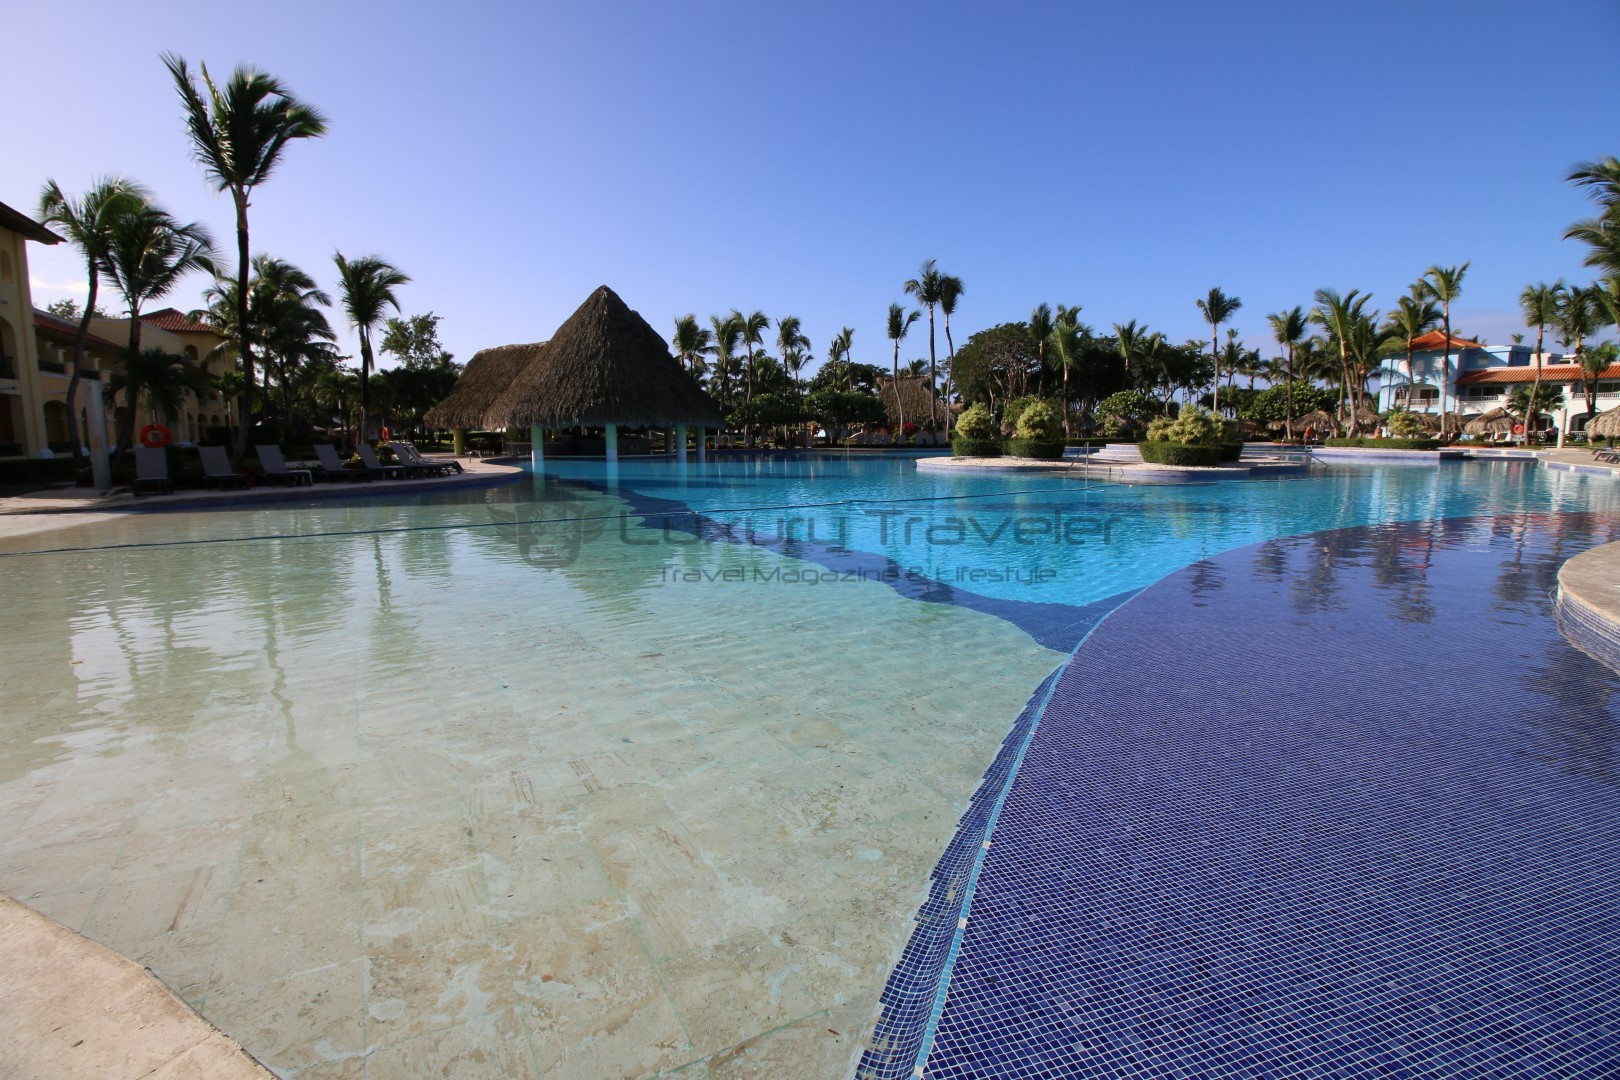 Iberostar_Hacienda_Dominicus_Republica_Dominicana_Hotel_Swimming_Pool